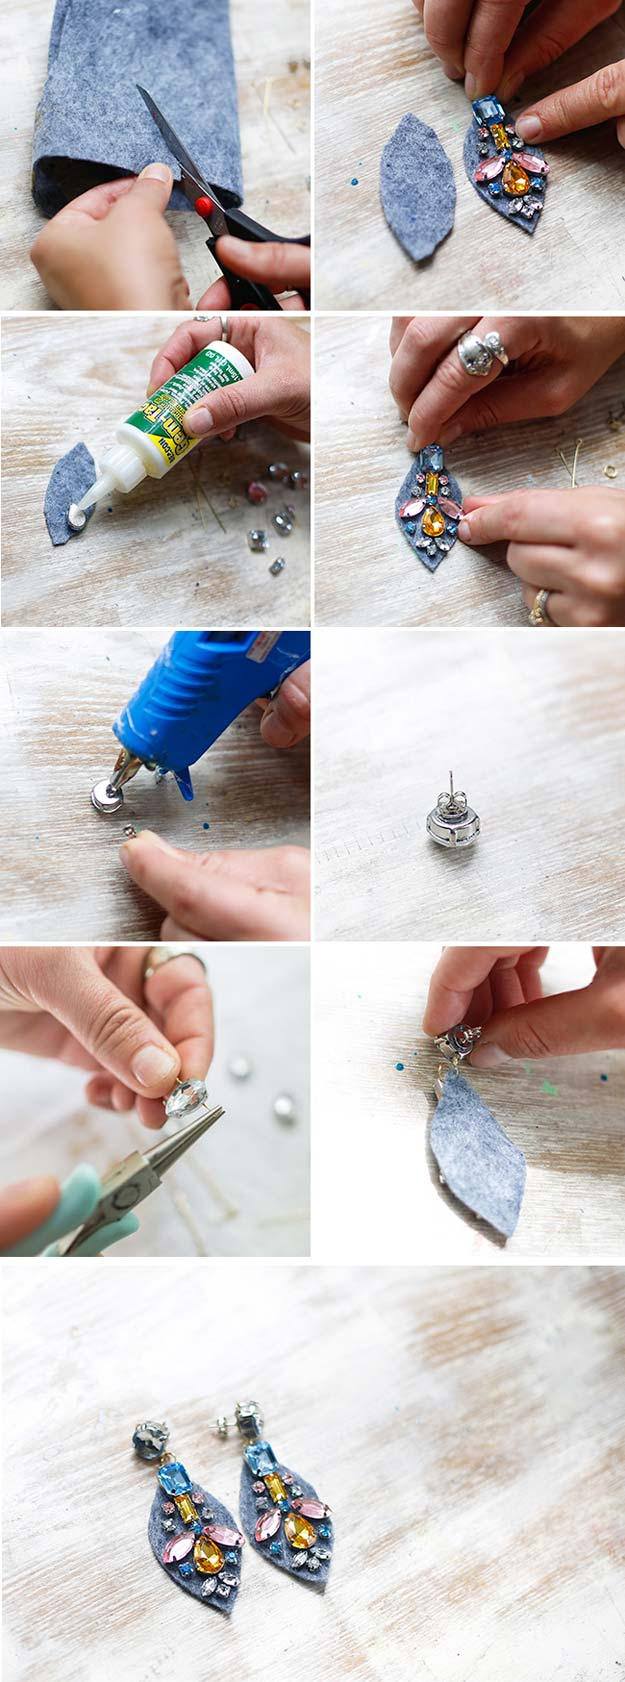 Crafts to Make and Sell - J. Crew Jewel Earings - Easy Step by Step Tutorials for Fun, Cool and Creative Ways for Teenagers to Make Money Selling Stuff - Room Decor, Accessories, Gifts and More http://diyprojectsforteens.com/diy-crafts-to-make-and-sell